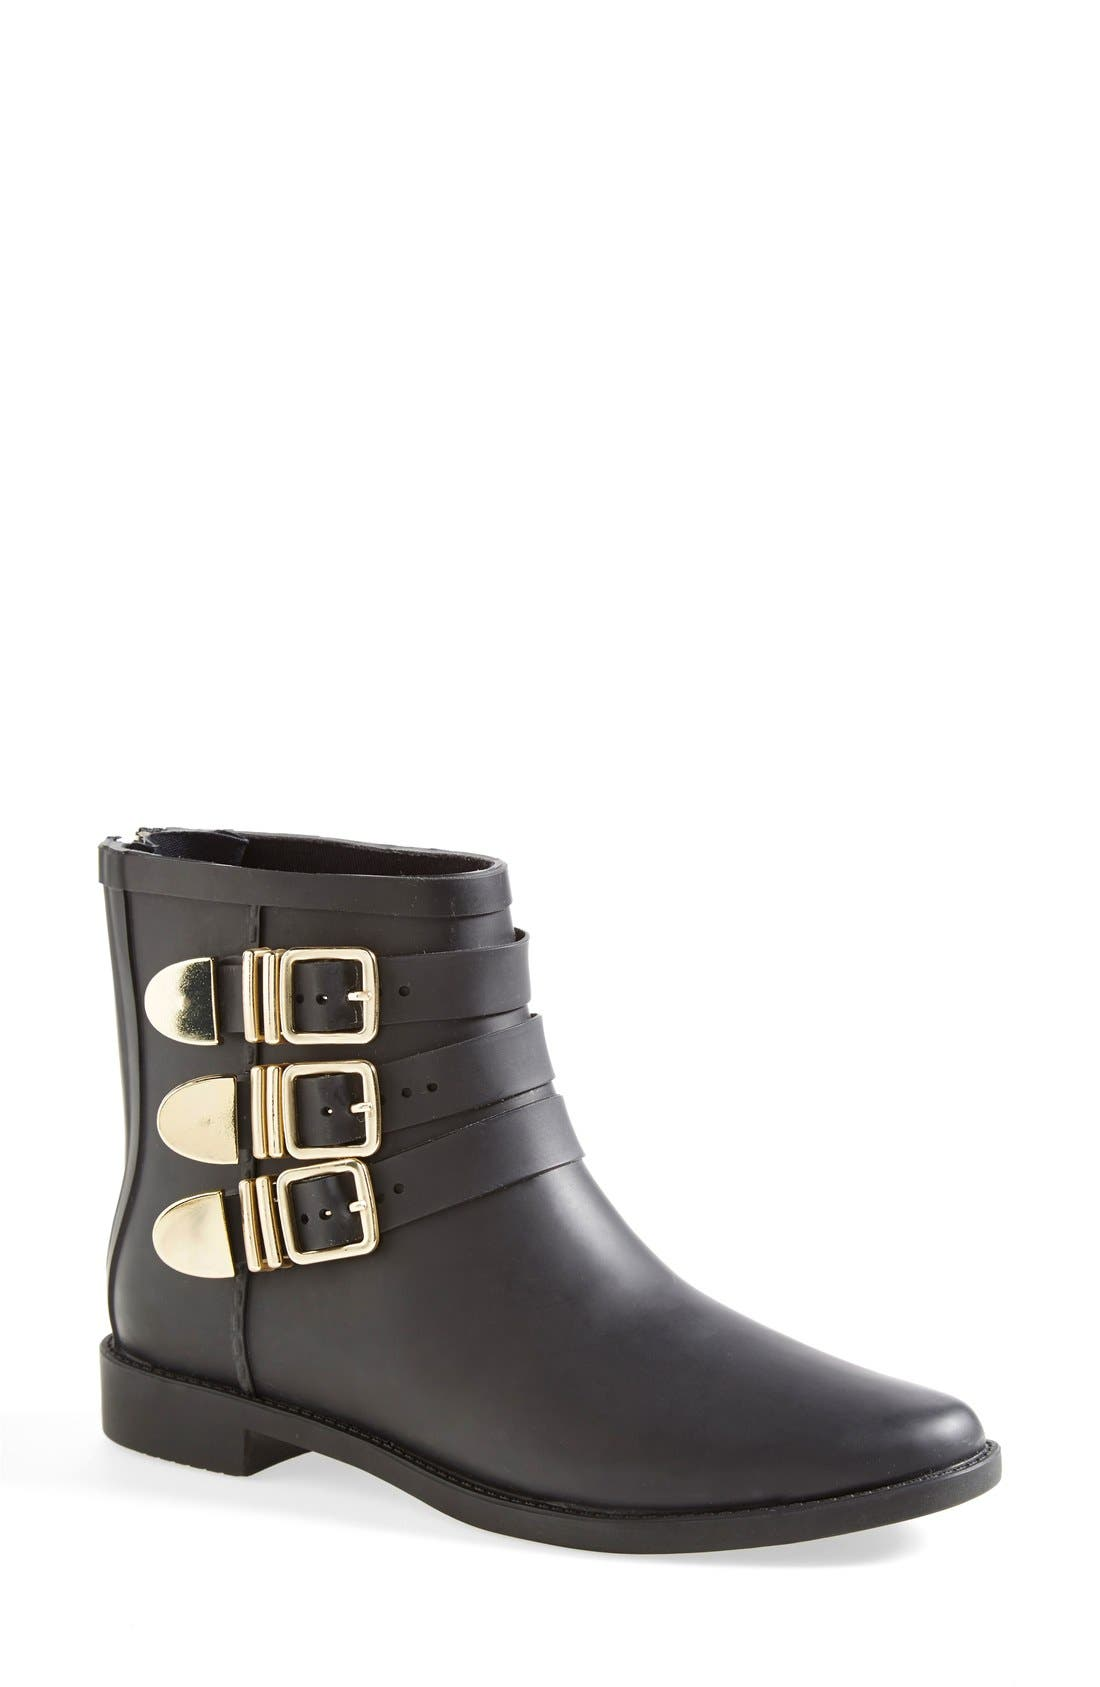 Alternate Image 1 Selected - Loeffler Randall 'Fenton' Rain Boot (Women)